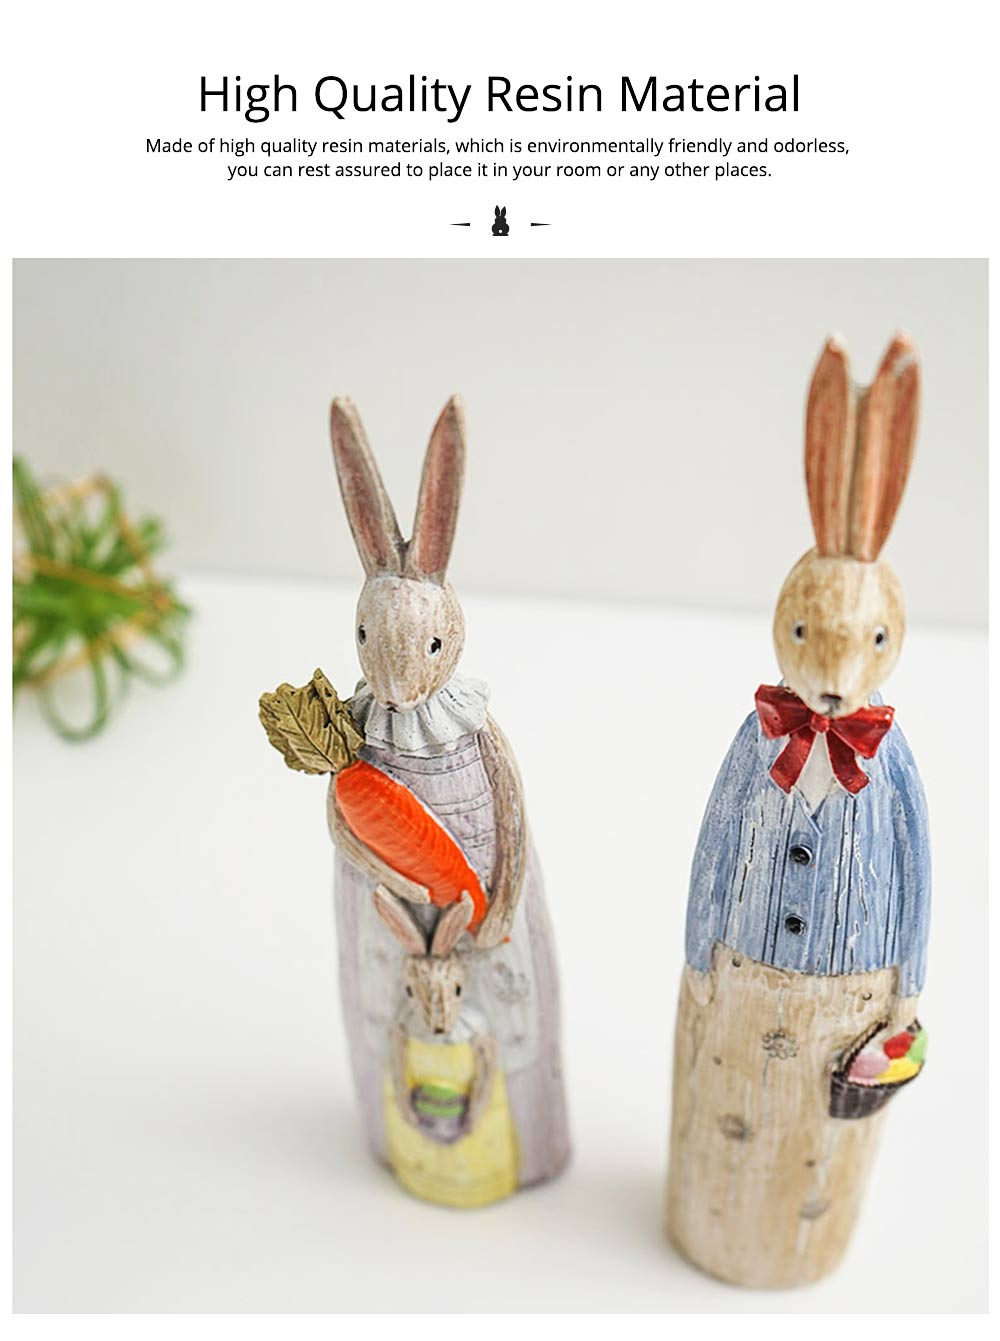 Resin Rabbit Crafts Ornaments Gifts for Easter Birthday, Pastoral Hand-painted Rabbit Decoration 8